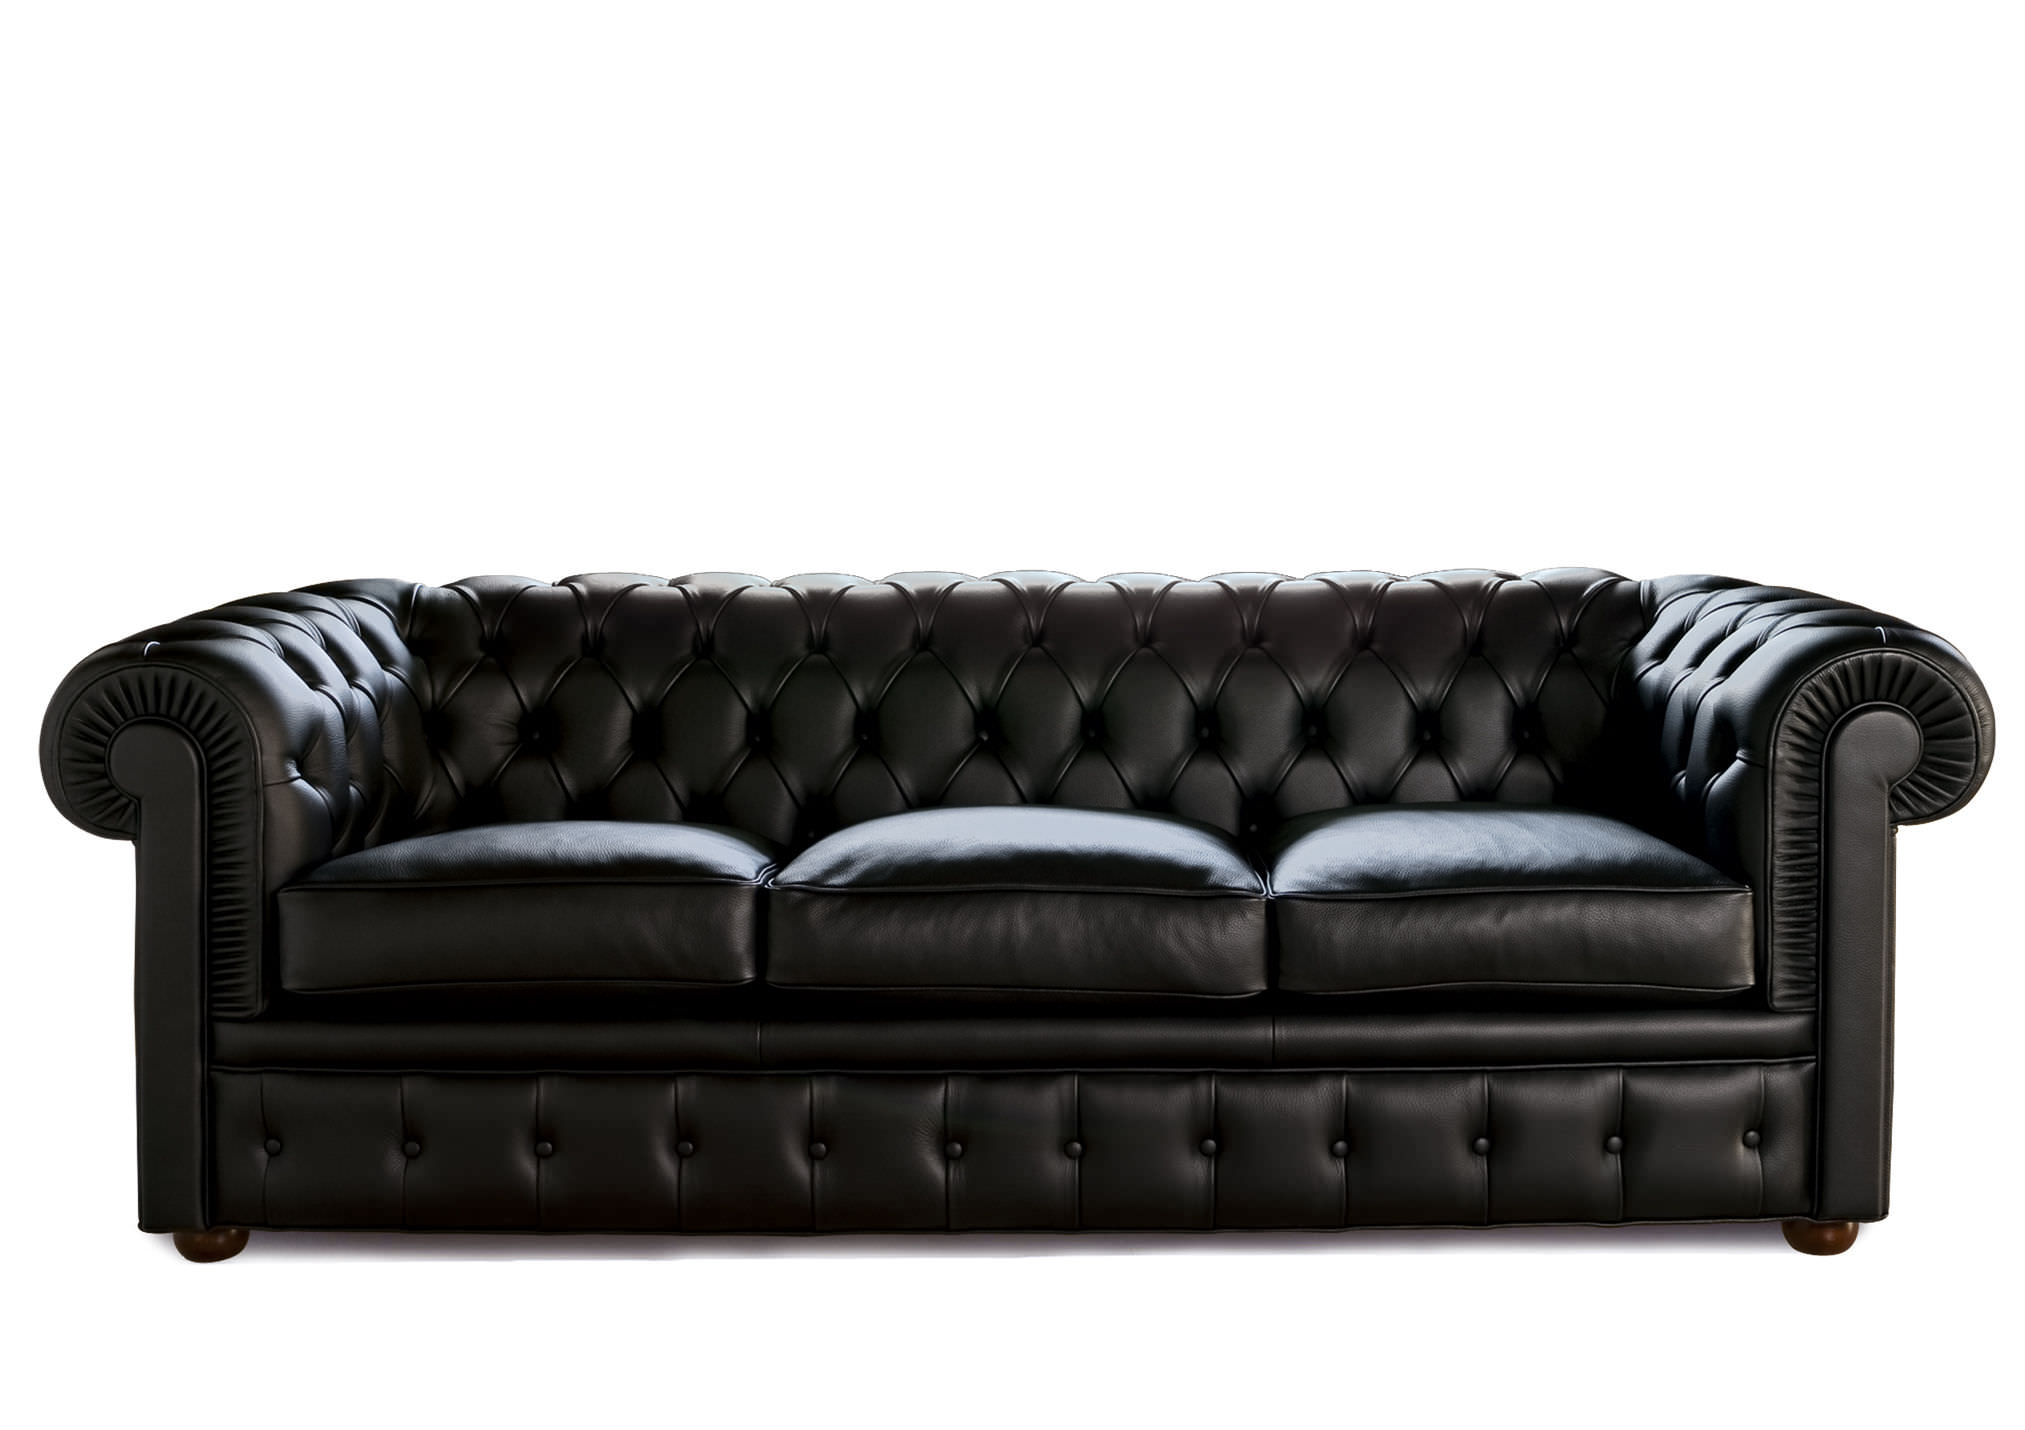 Bettsofa Chester Berto Salotti Chesterfield Stoff Leder